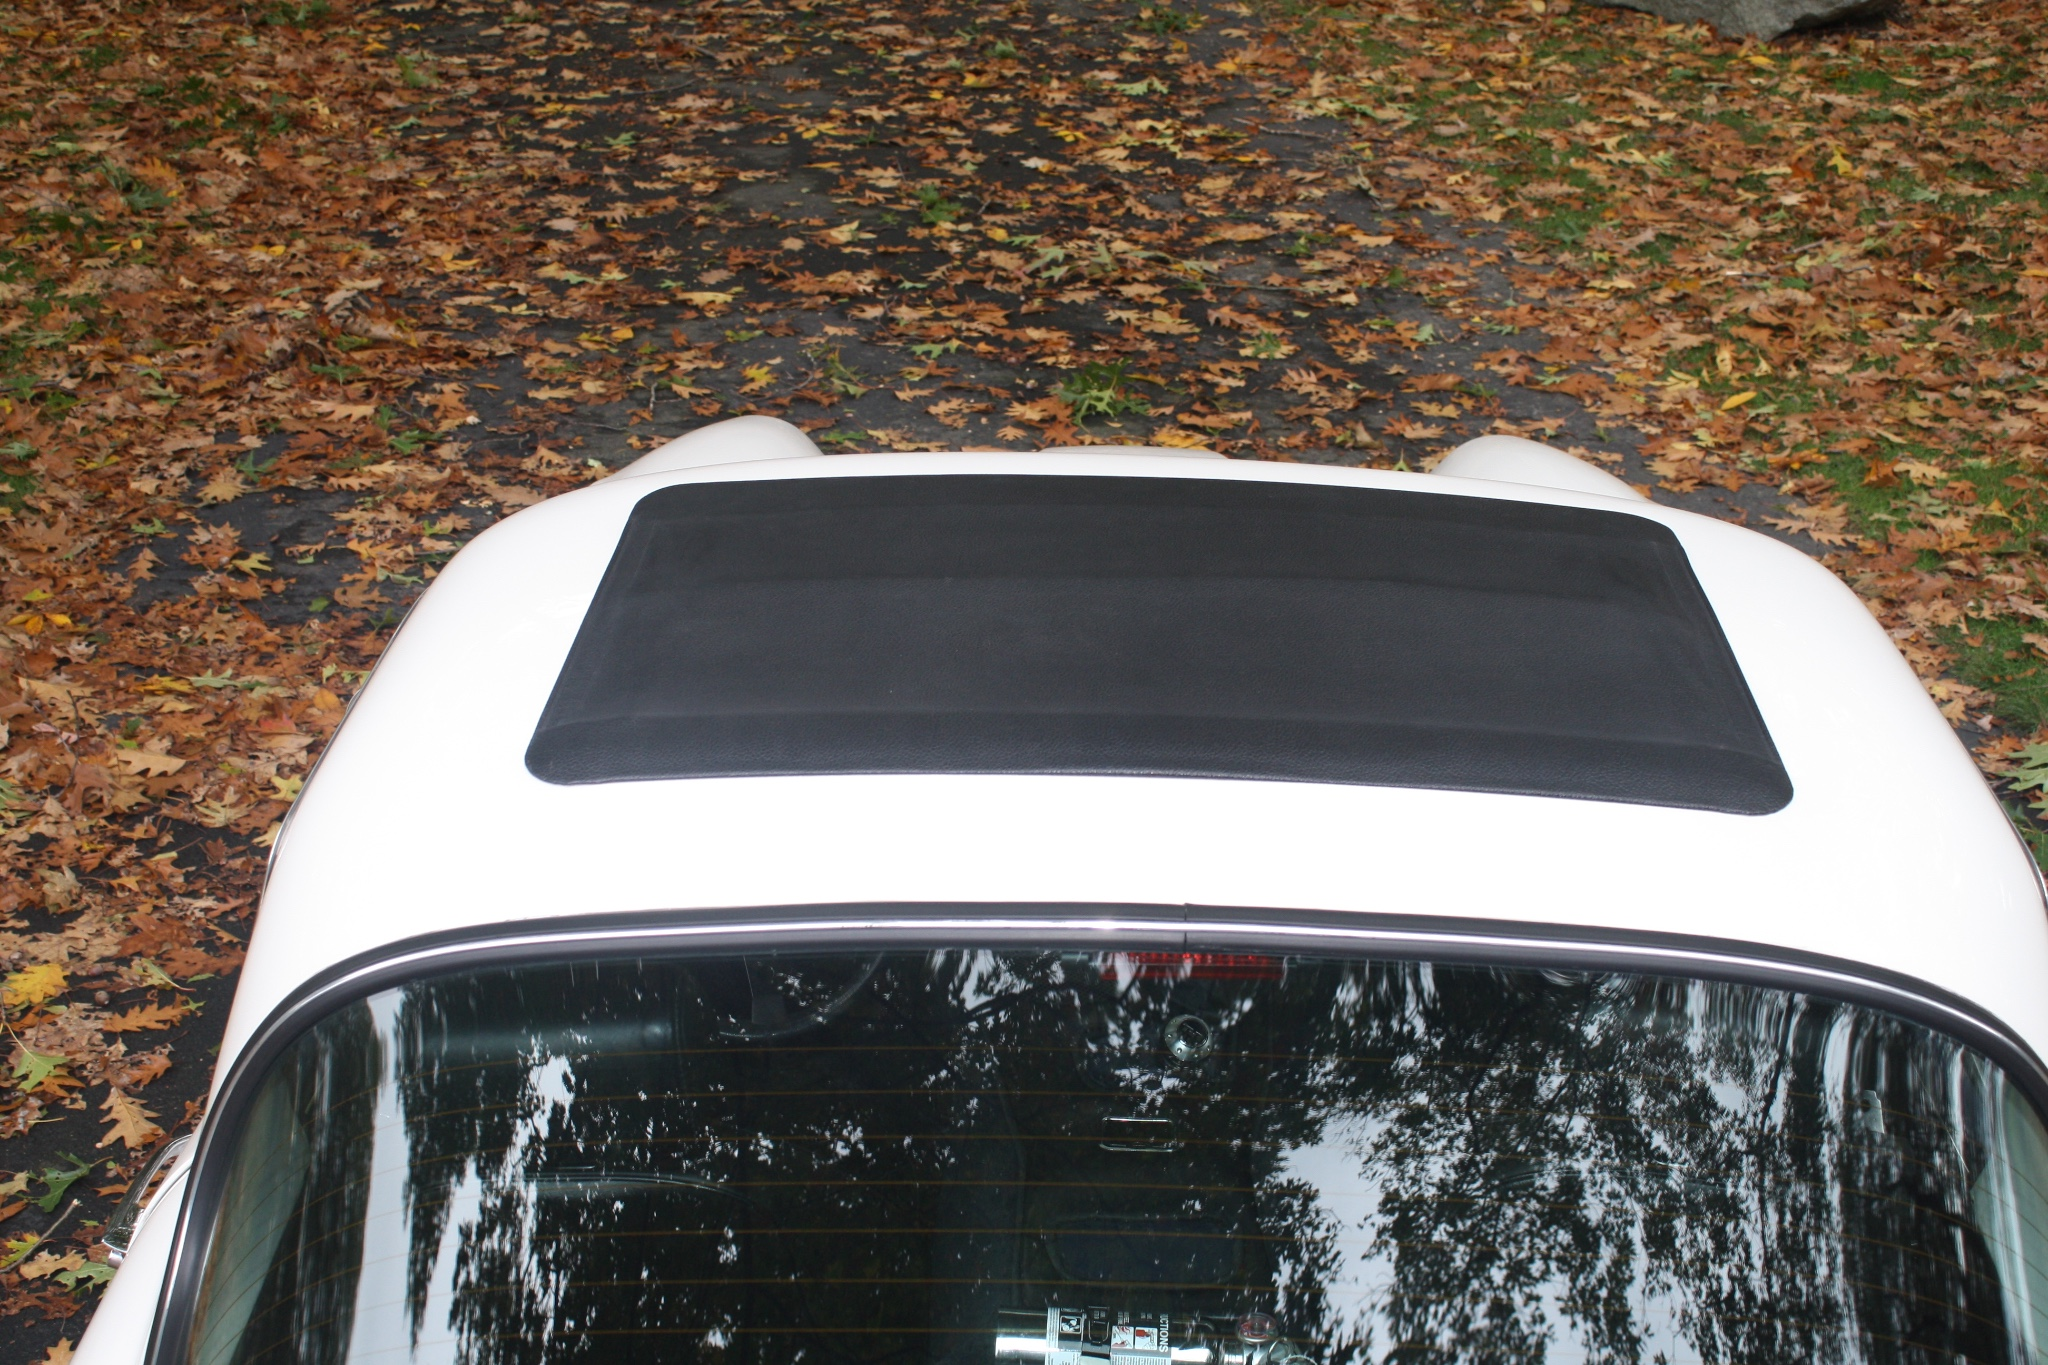 The TVR 2500M in our pictures is fitted with a sun roof.